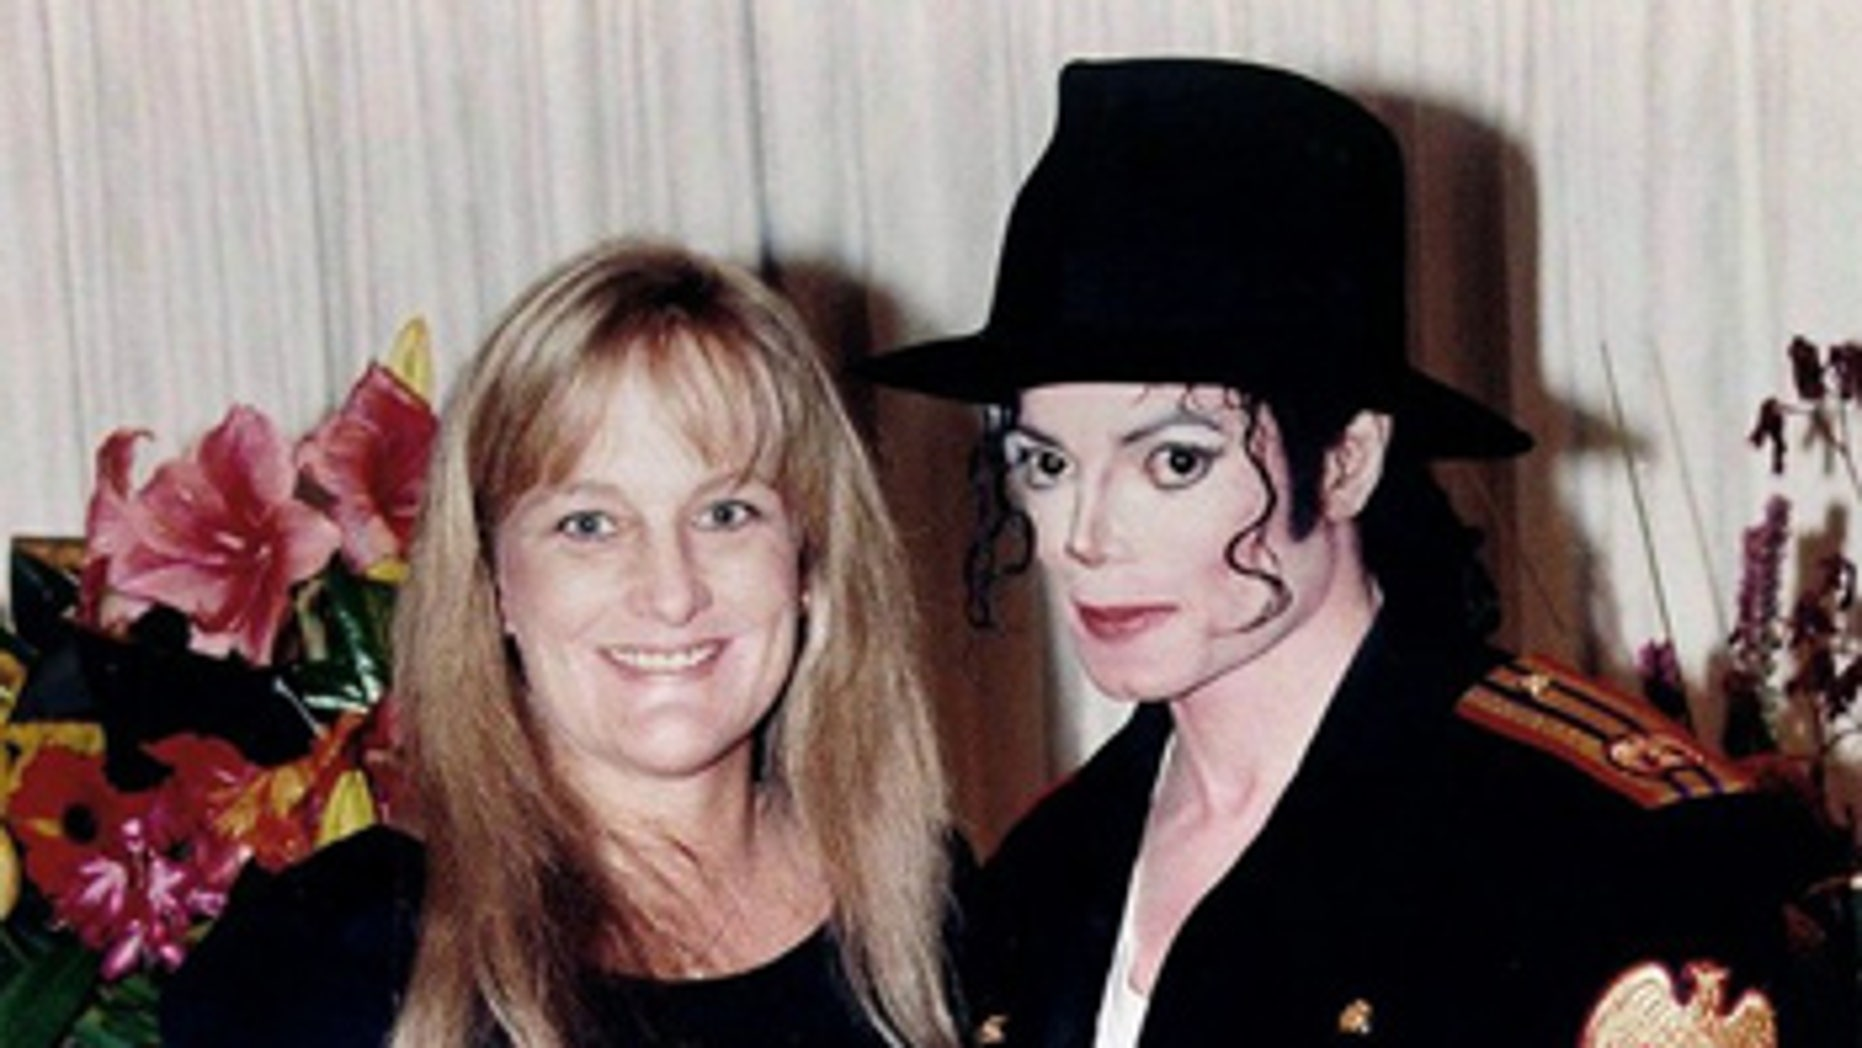 November 14, 1996: Pop star Michael Jackson and his new wife Debbie Rowe pose for a wedding photo minutes after the ceremony in California.